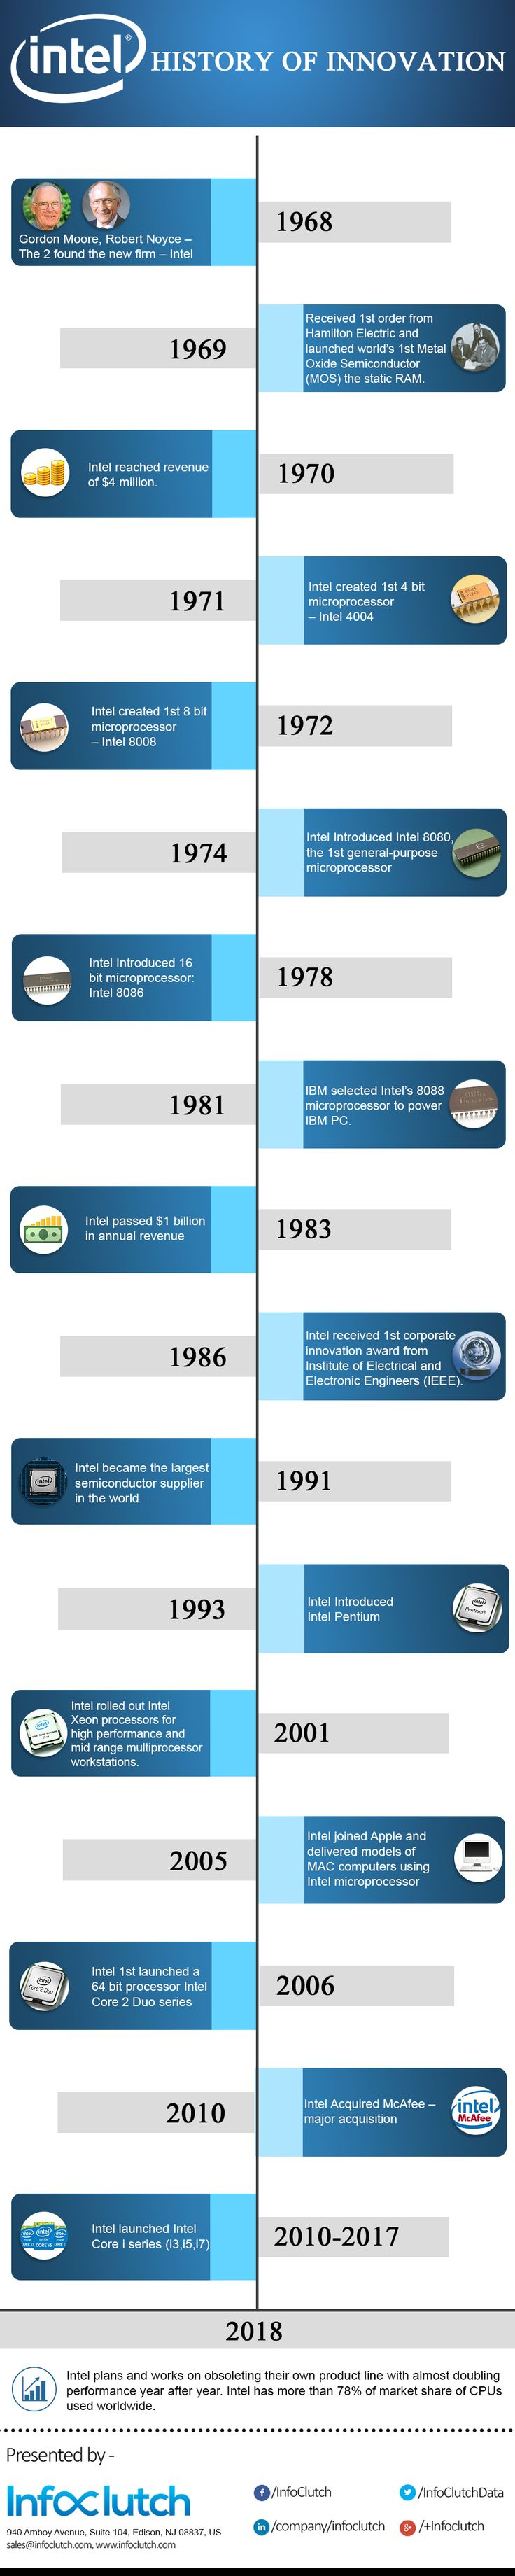 Explore history, accomplishments and newsworthy moments of #intel  with an interactive timeline.  #infographic #companyhistory #companytimeline #historyofinnovation